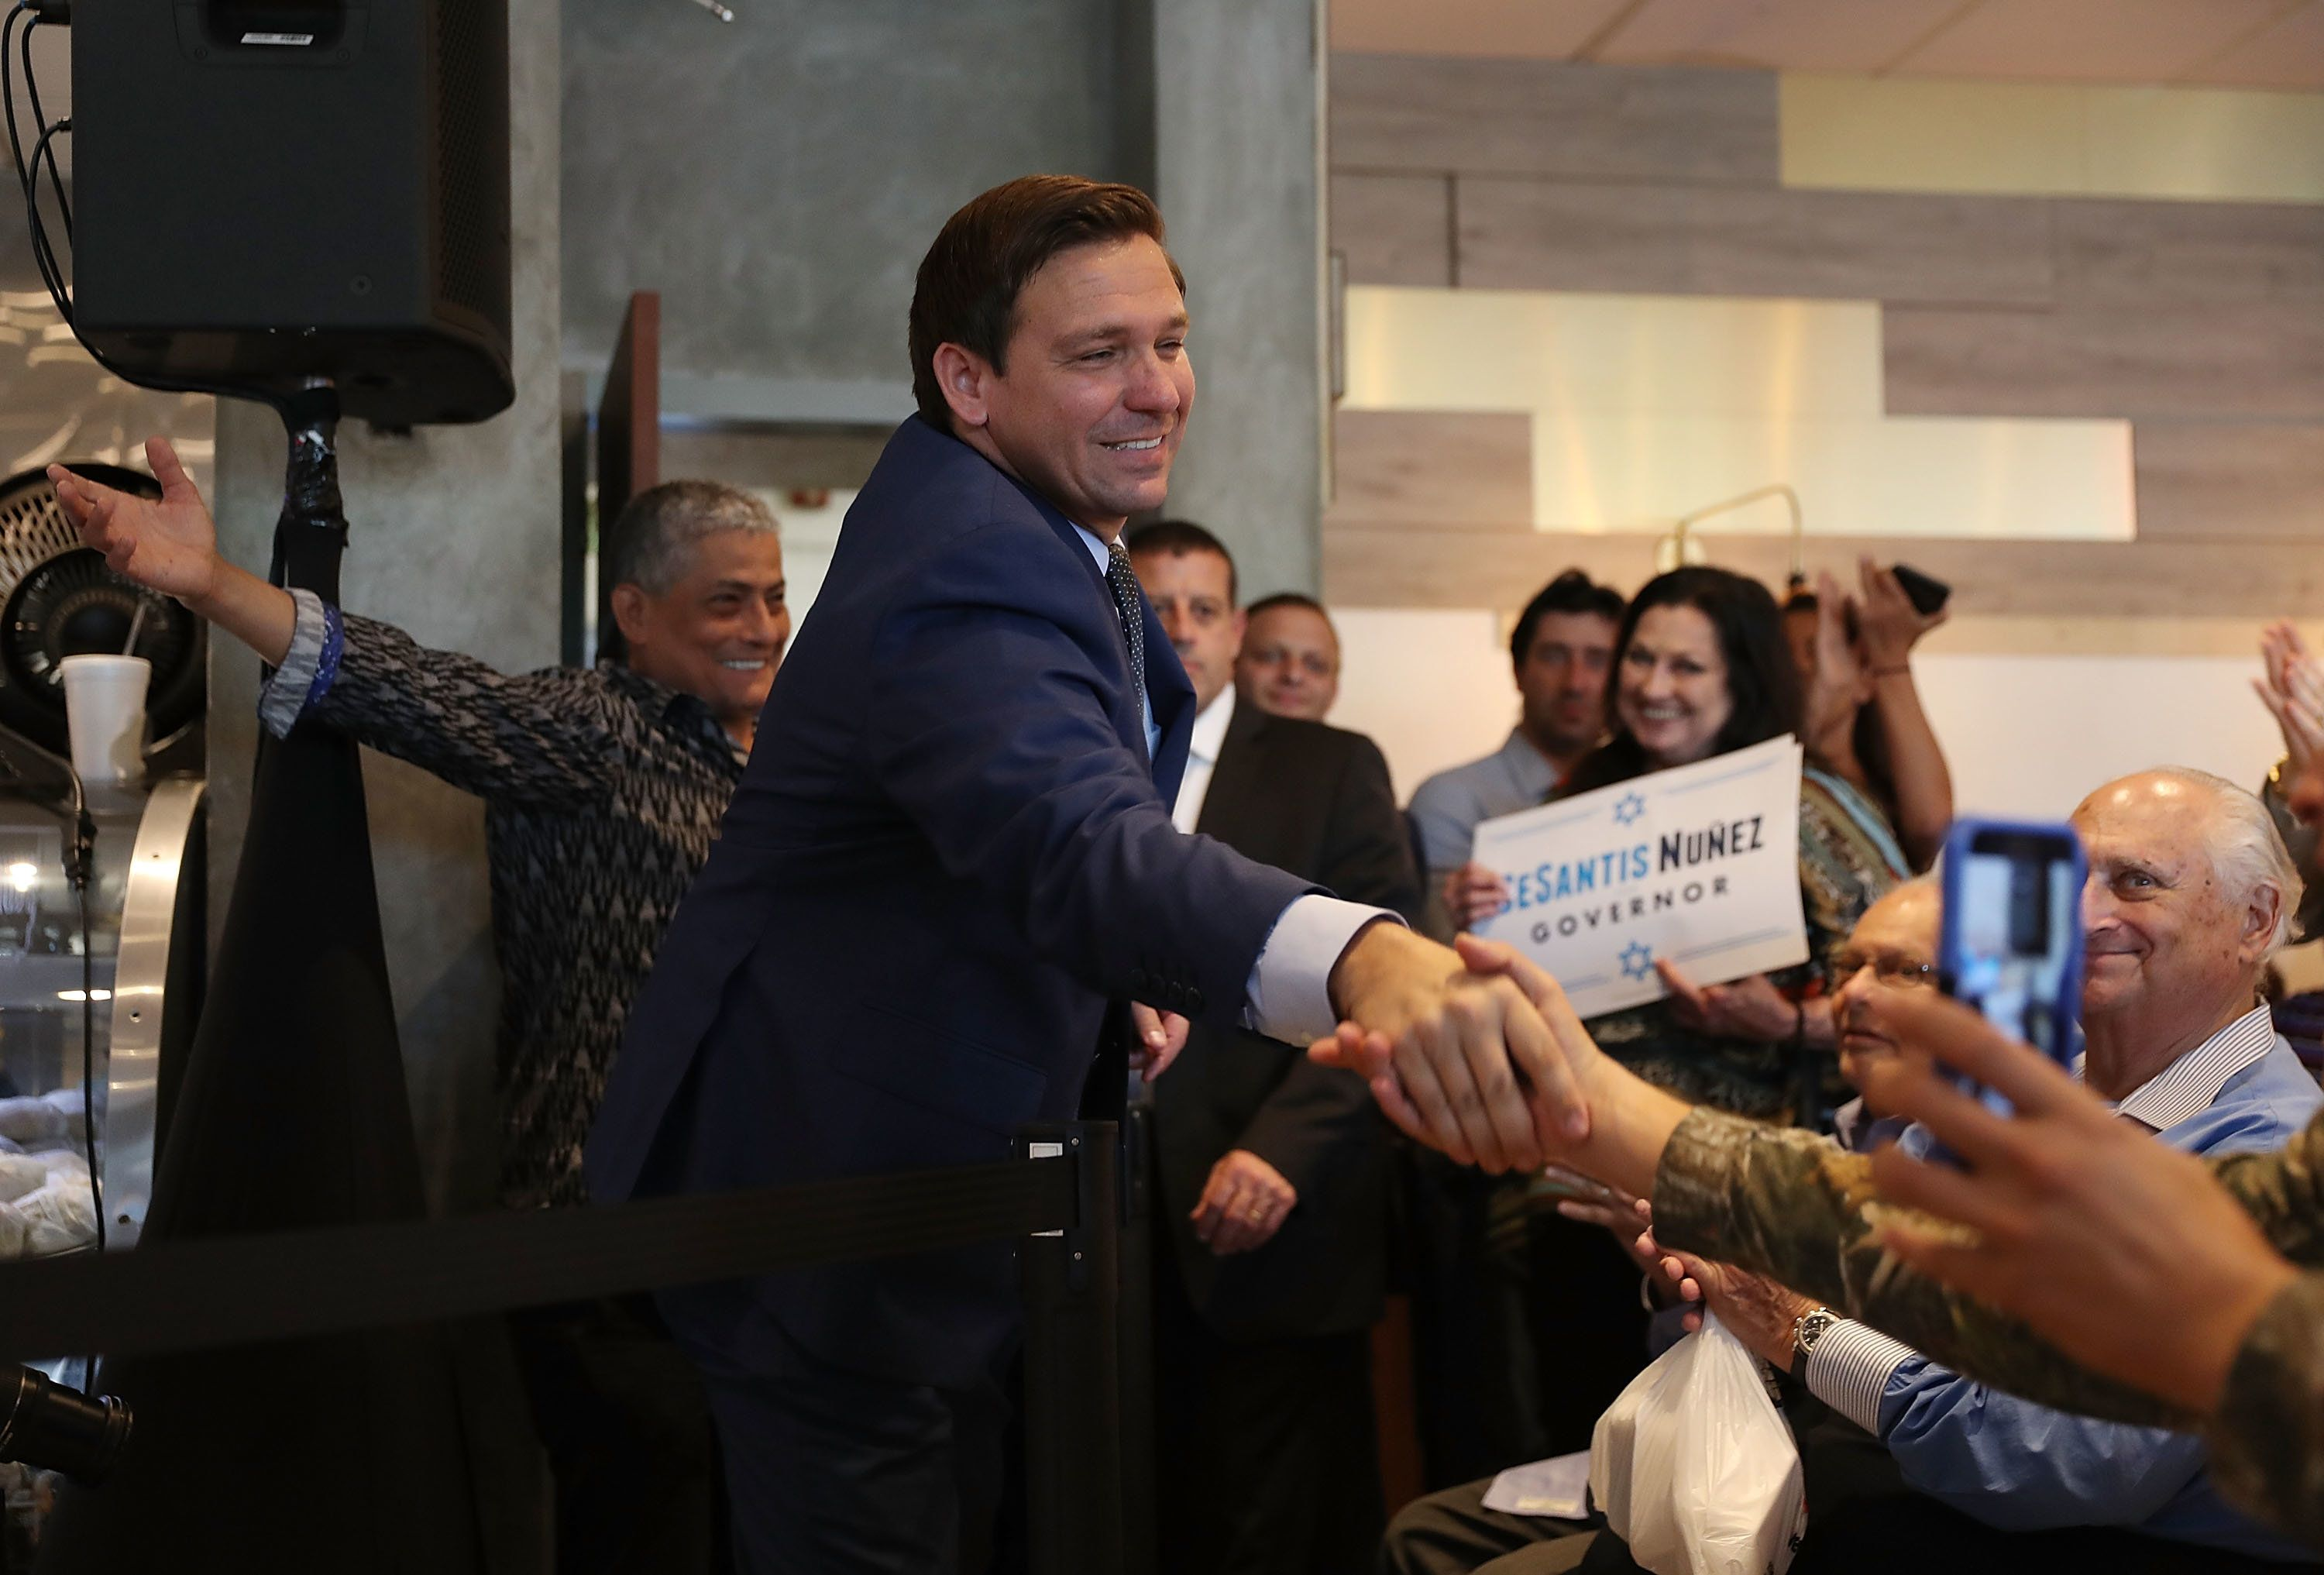 MIAMI, FL - OCTOBER 23:  Republican gubernatorial candidate Ron DeSantis greets people as he arrives for a campaign rally at Mo's Bagels restaurant on October 23, 2018 in Miami, Florida. DeSantis is facing off against Democratic challenger Andrew Gillum to be the next Florida governor.  (Photo by Joe Raedle/Getty Images)